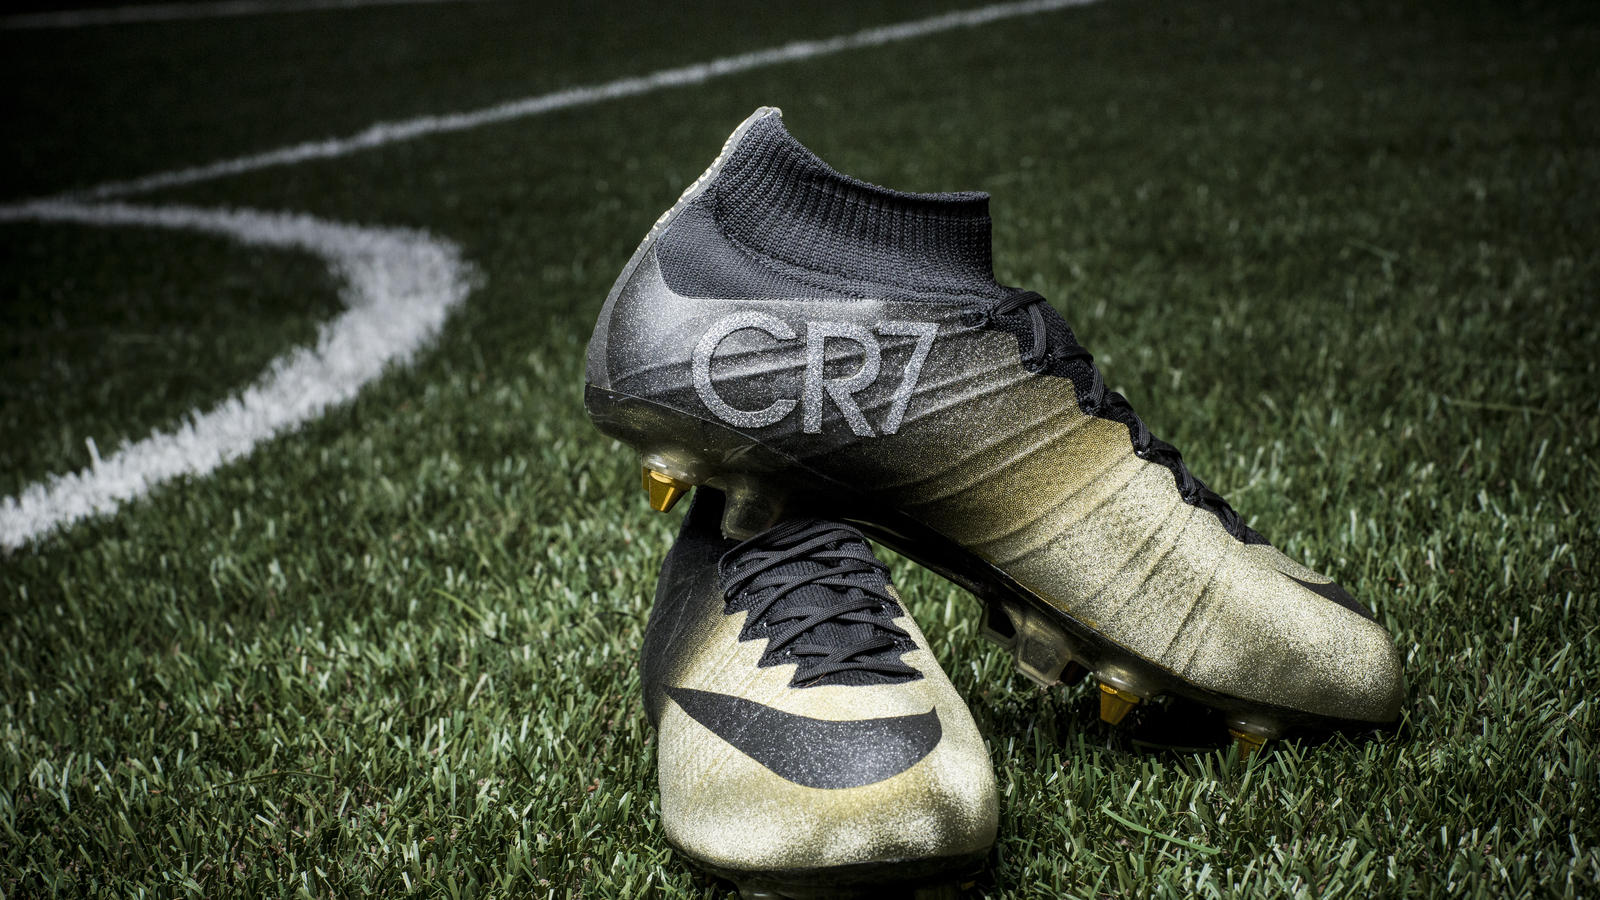 e9a837503694 Nike Congratulates Cristiano Ronaldo with Mercurial CR7 Rare Gold ...